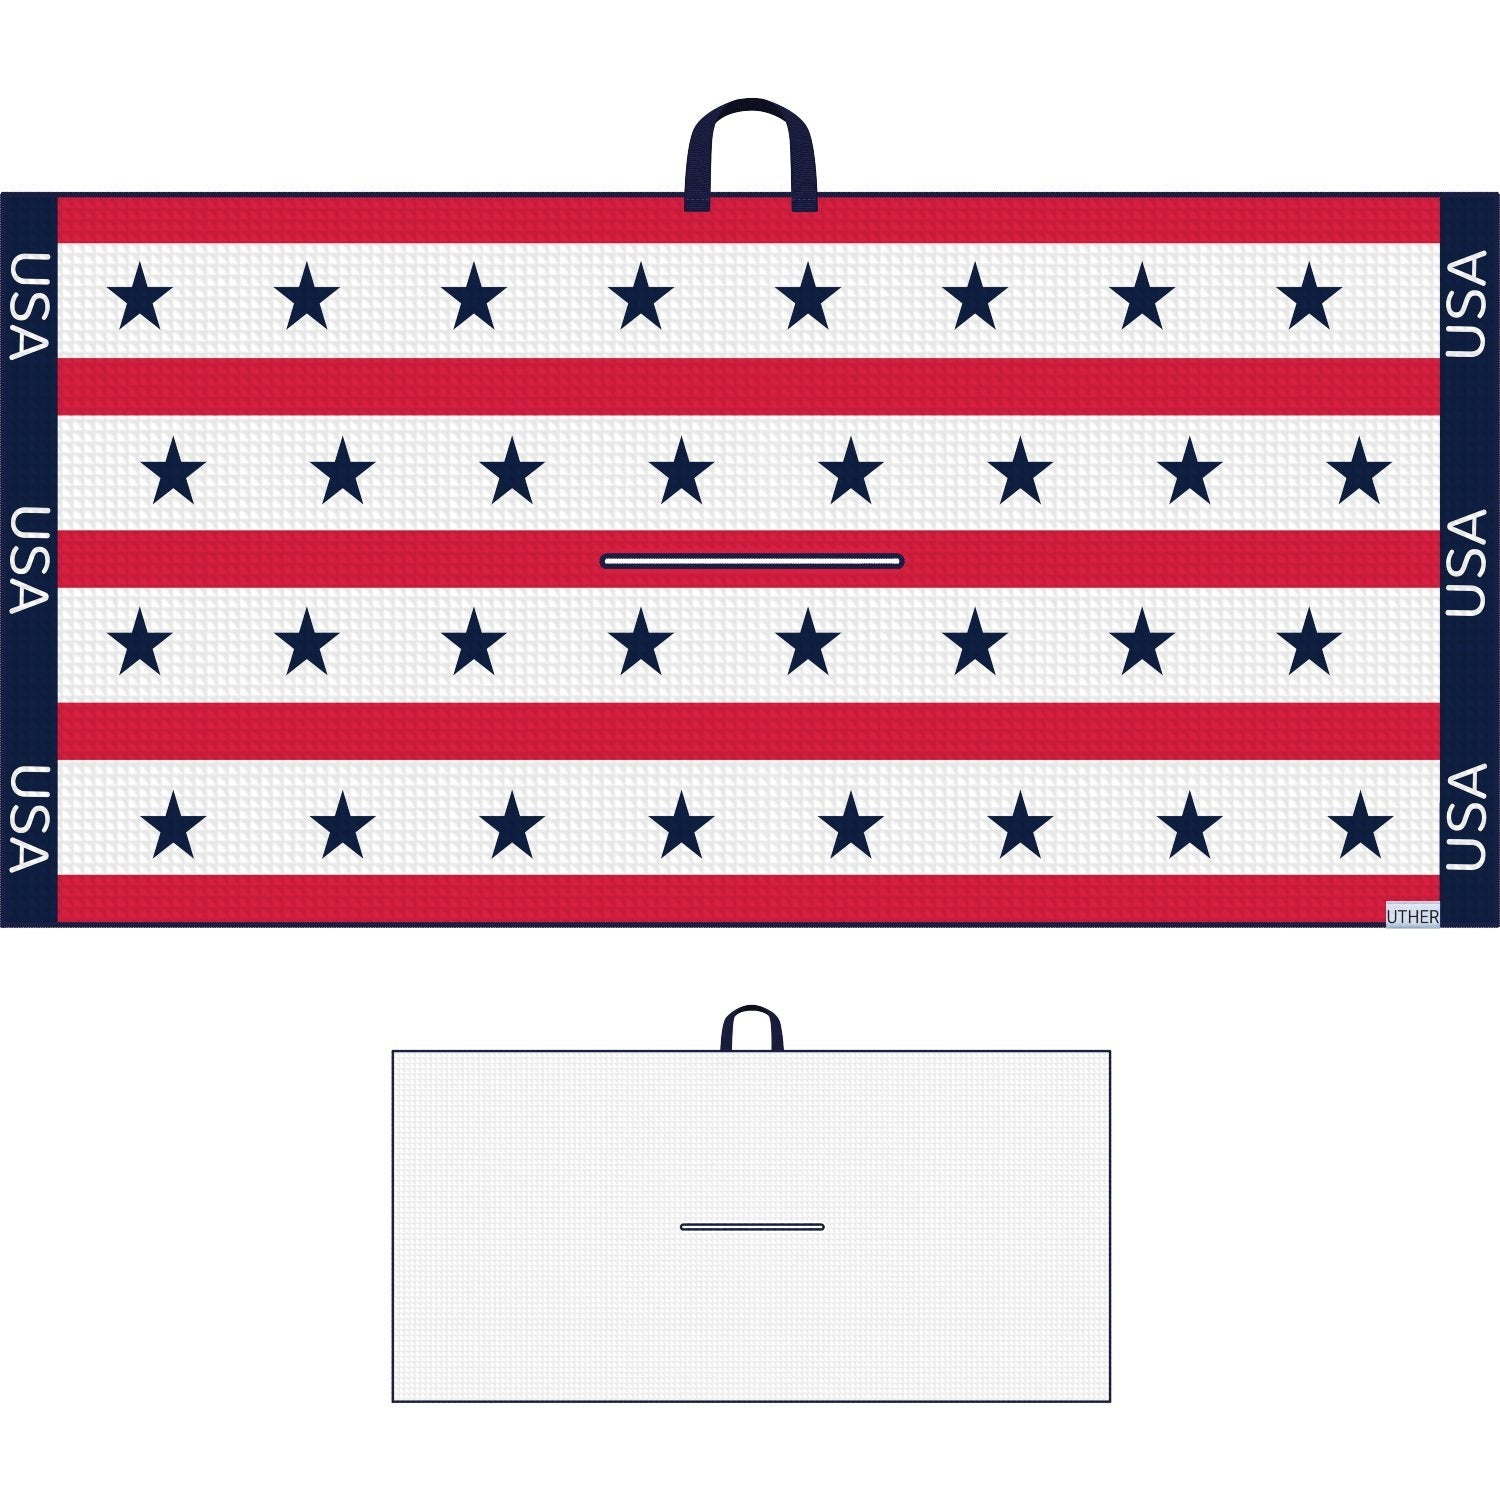 Fashionable Waffle Texture Microfiber Golf Towel complete with clip. Showcasing the stars and stripes! This timeless look can be conveniently attached to your golf bag! Repping your country for all 18 holes!